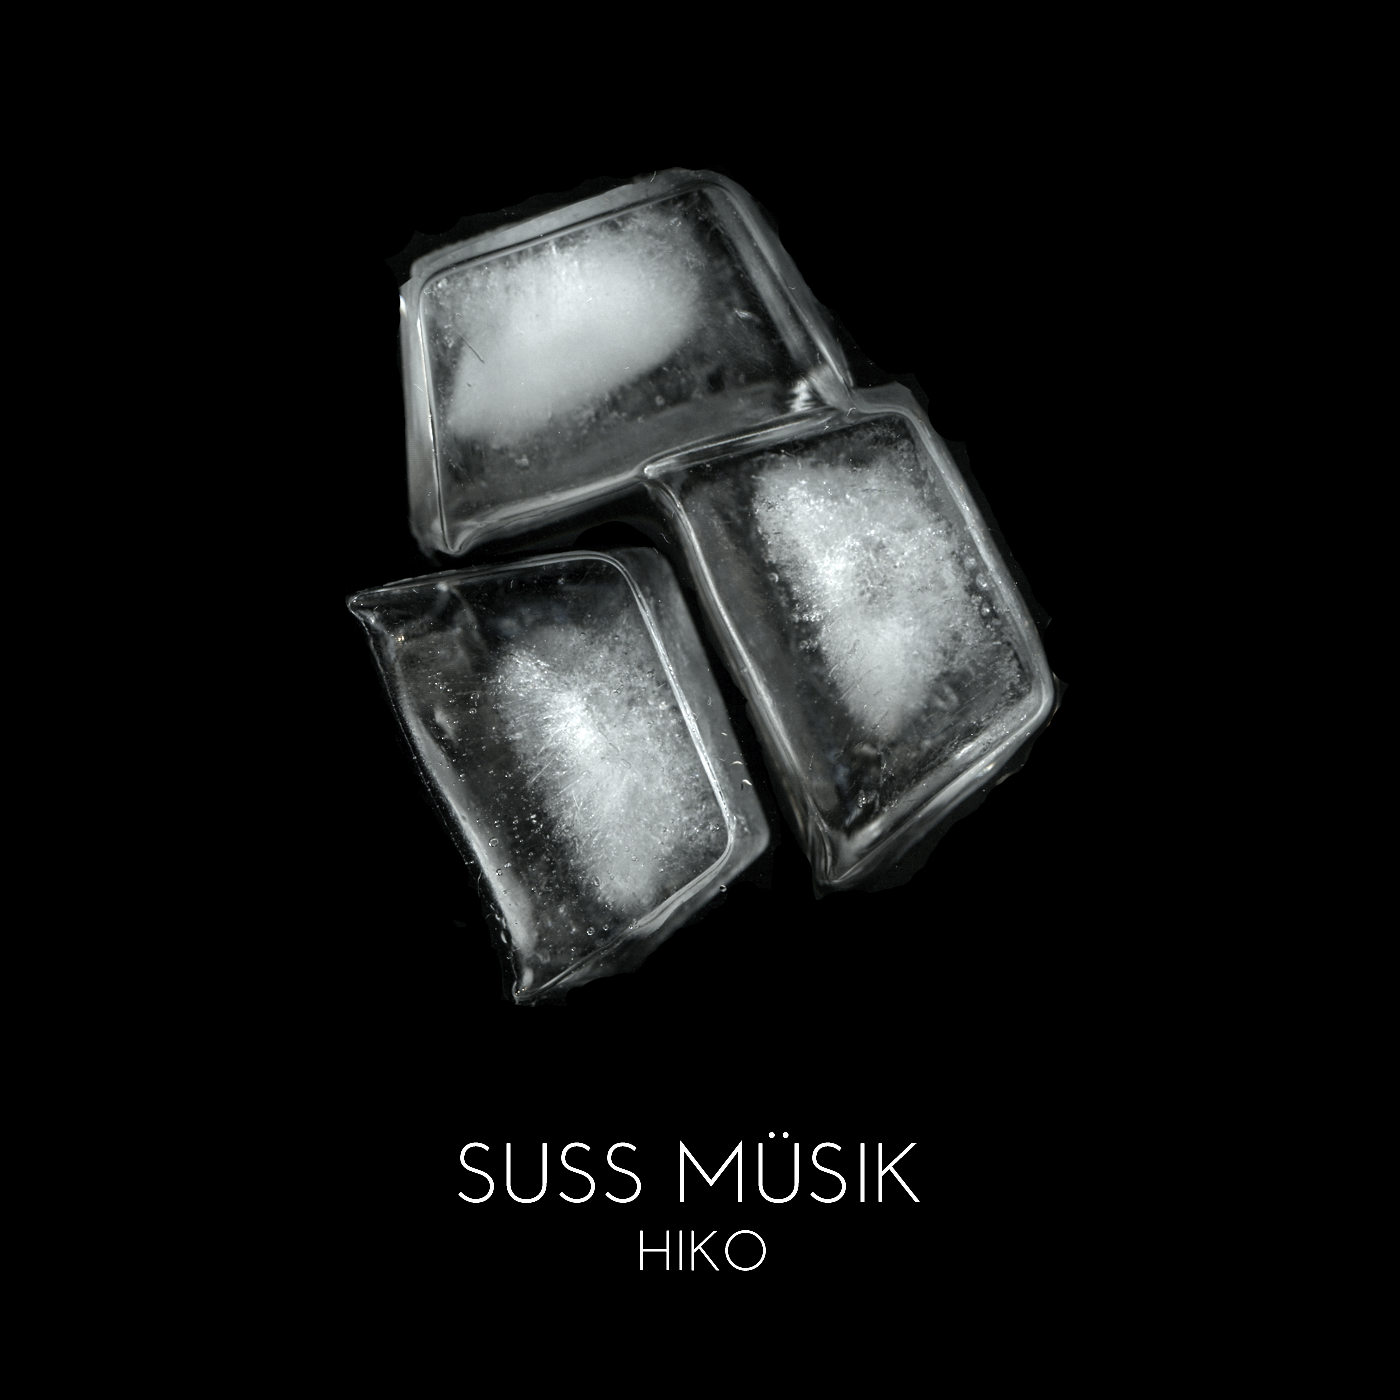 Hiko album cover